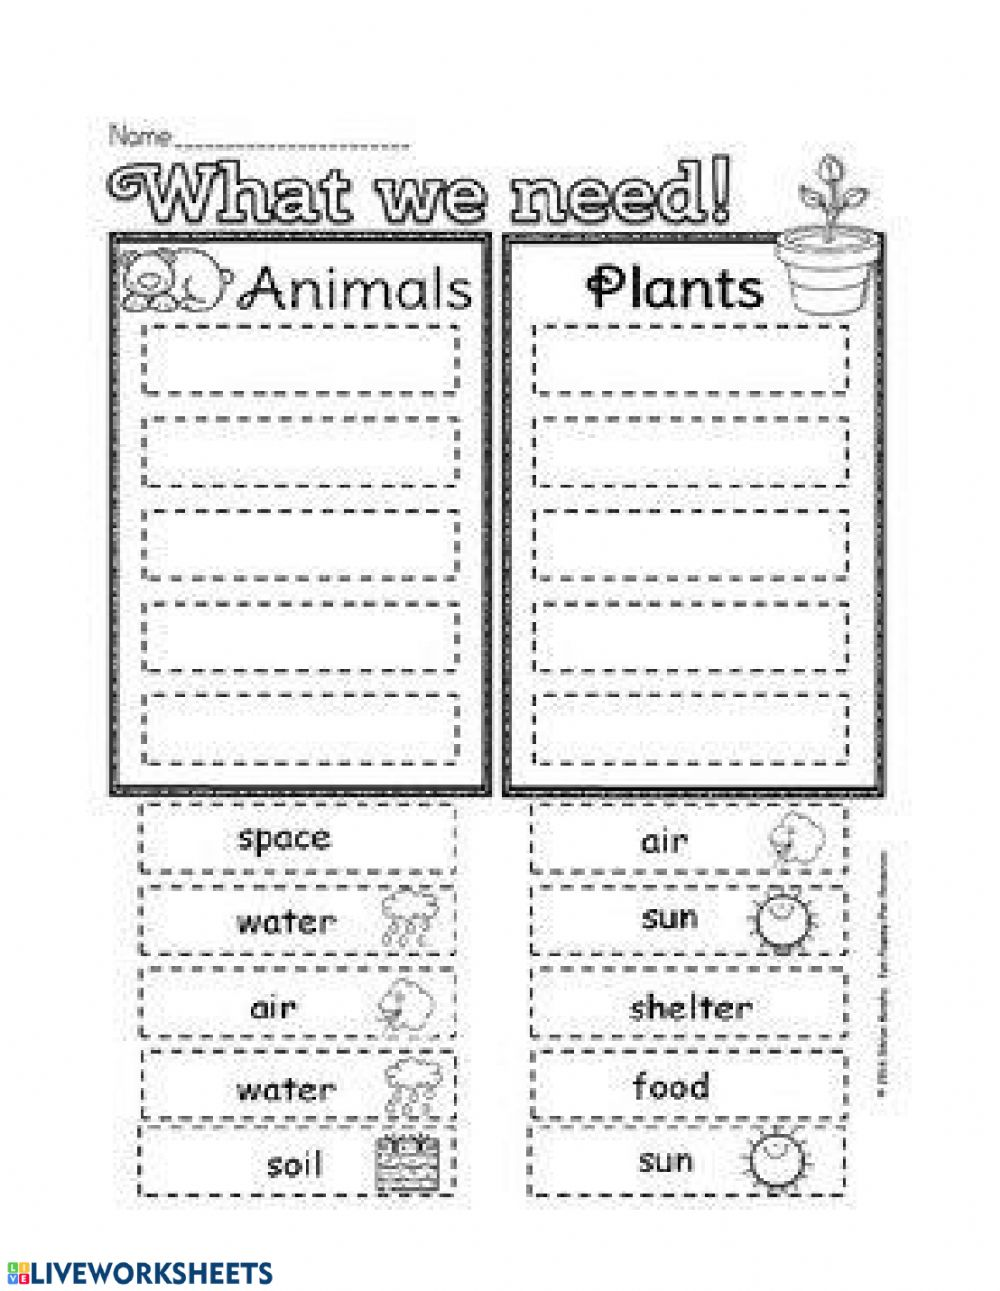 hight resolution of Animal plants and need worksheet